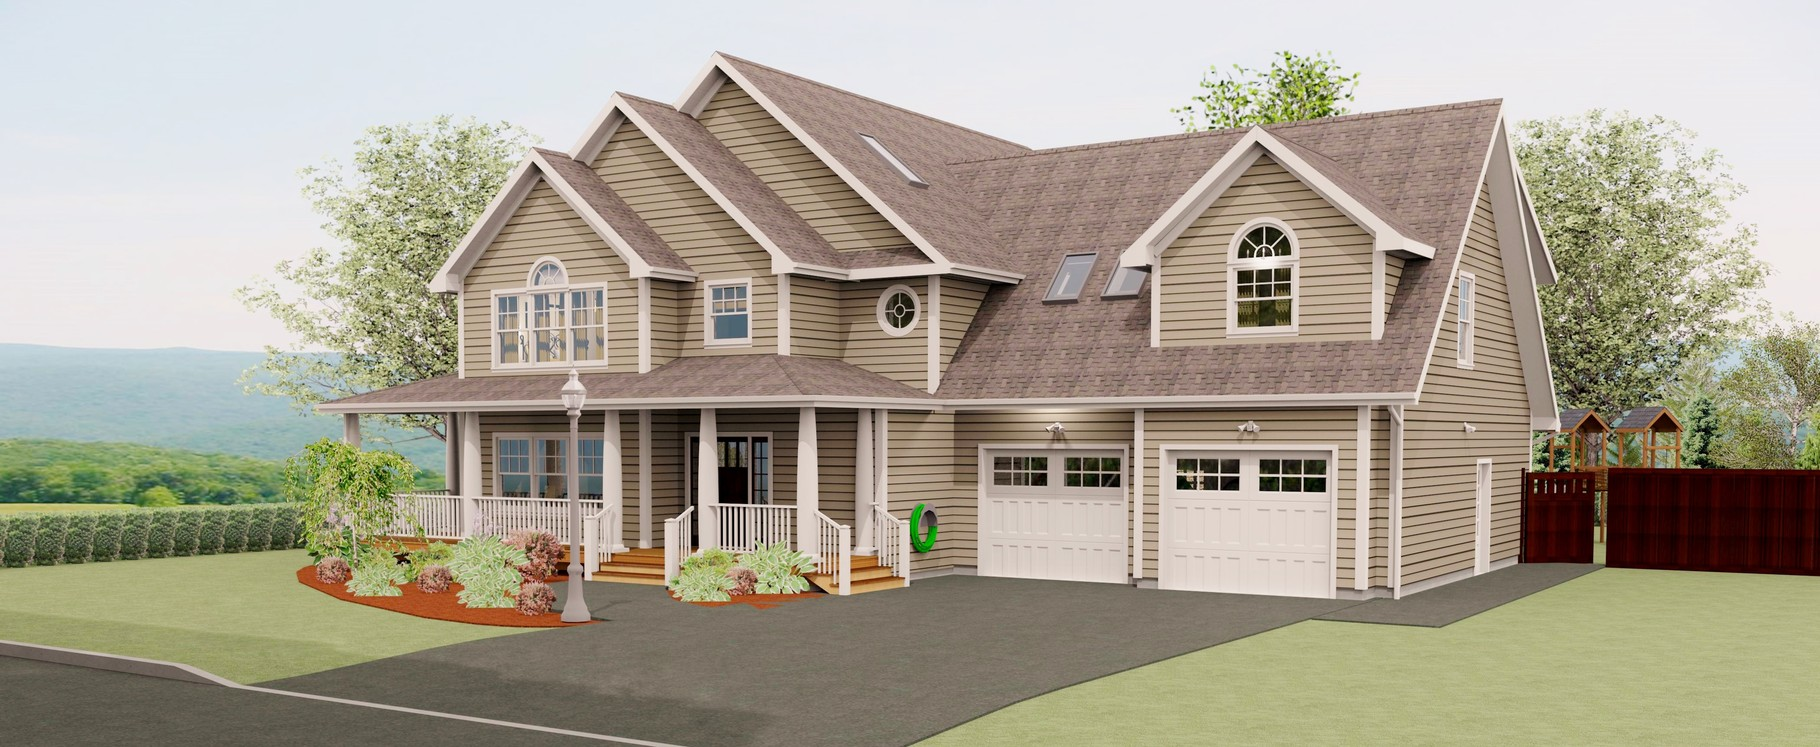 We Can Build Your Dream Home